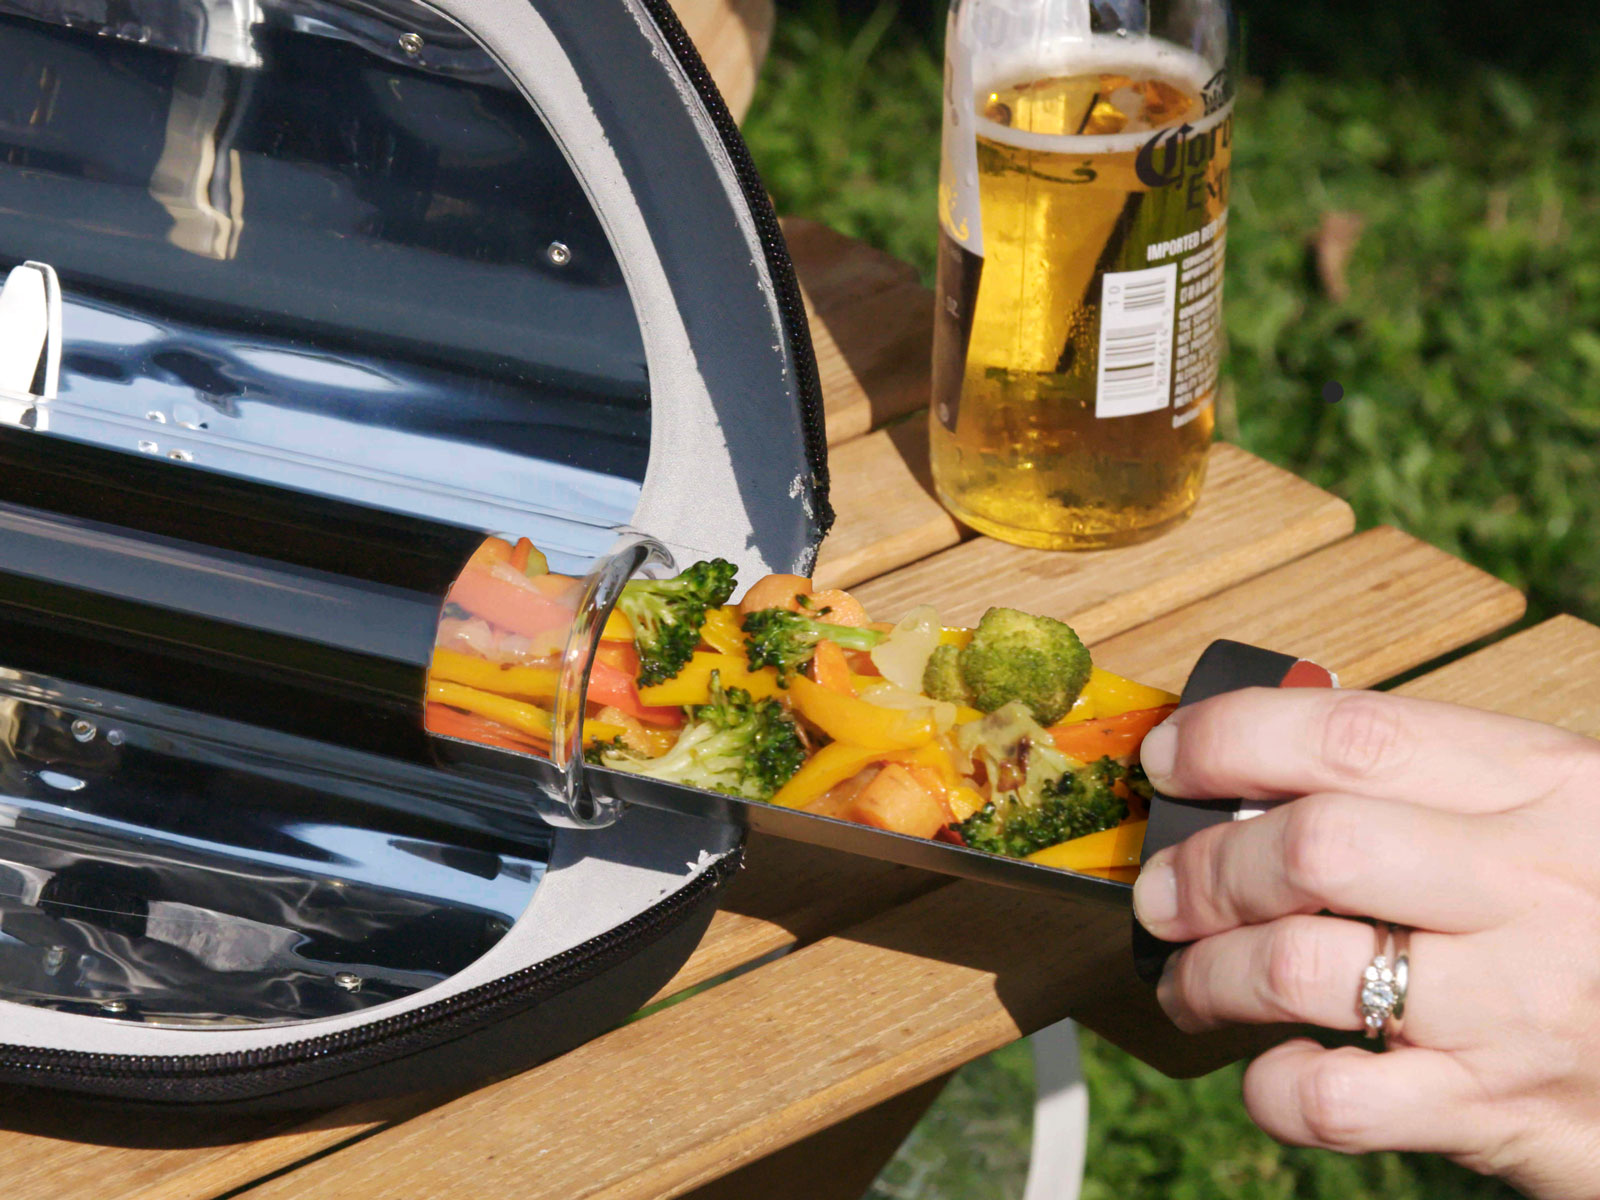 This Very Cool Piece of Outdoor Cooking Equipment Just Got a Lot Cheaper